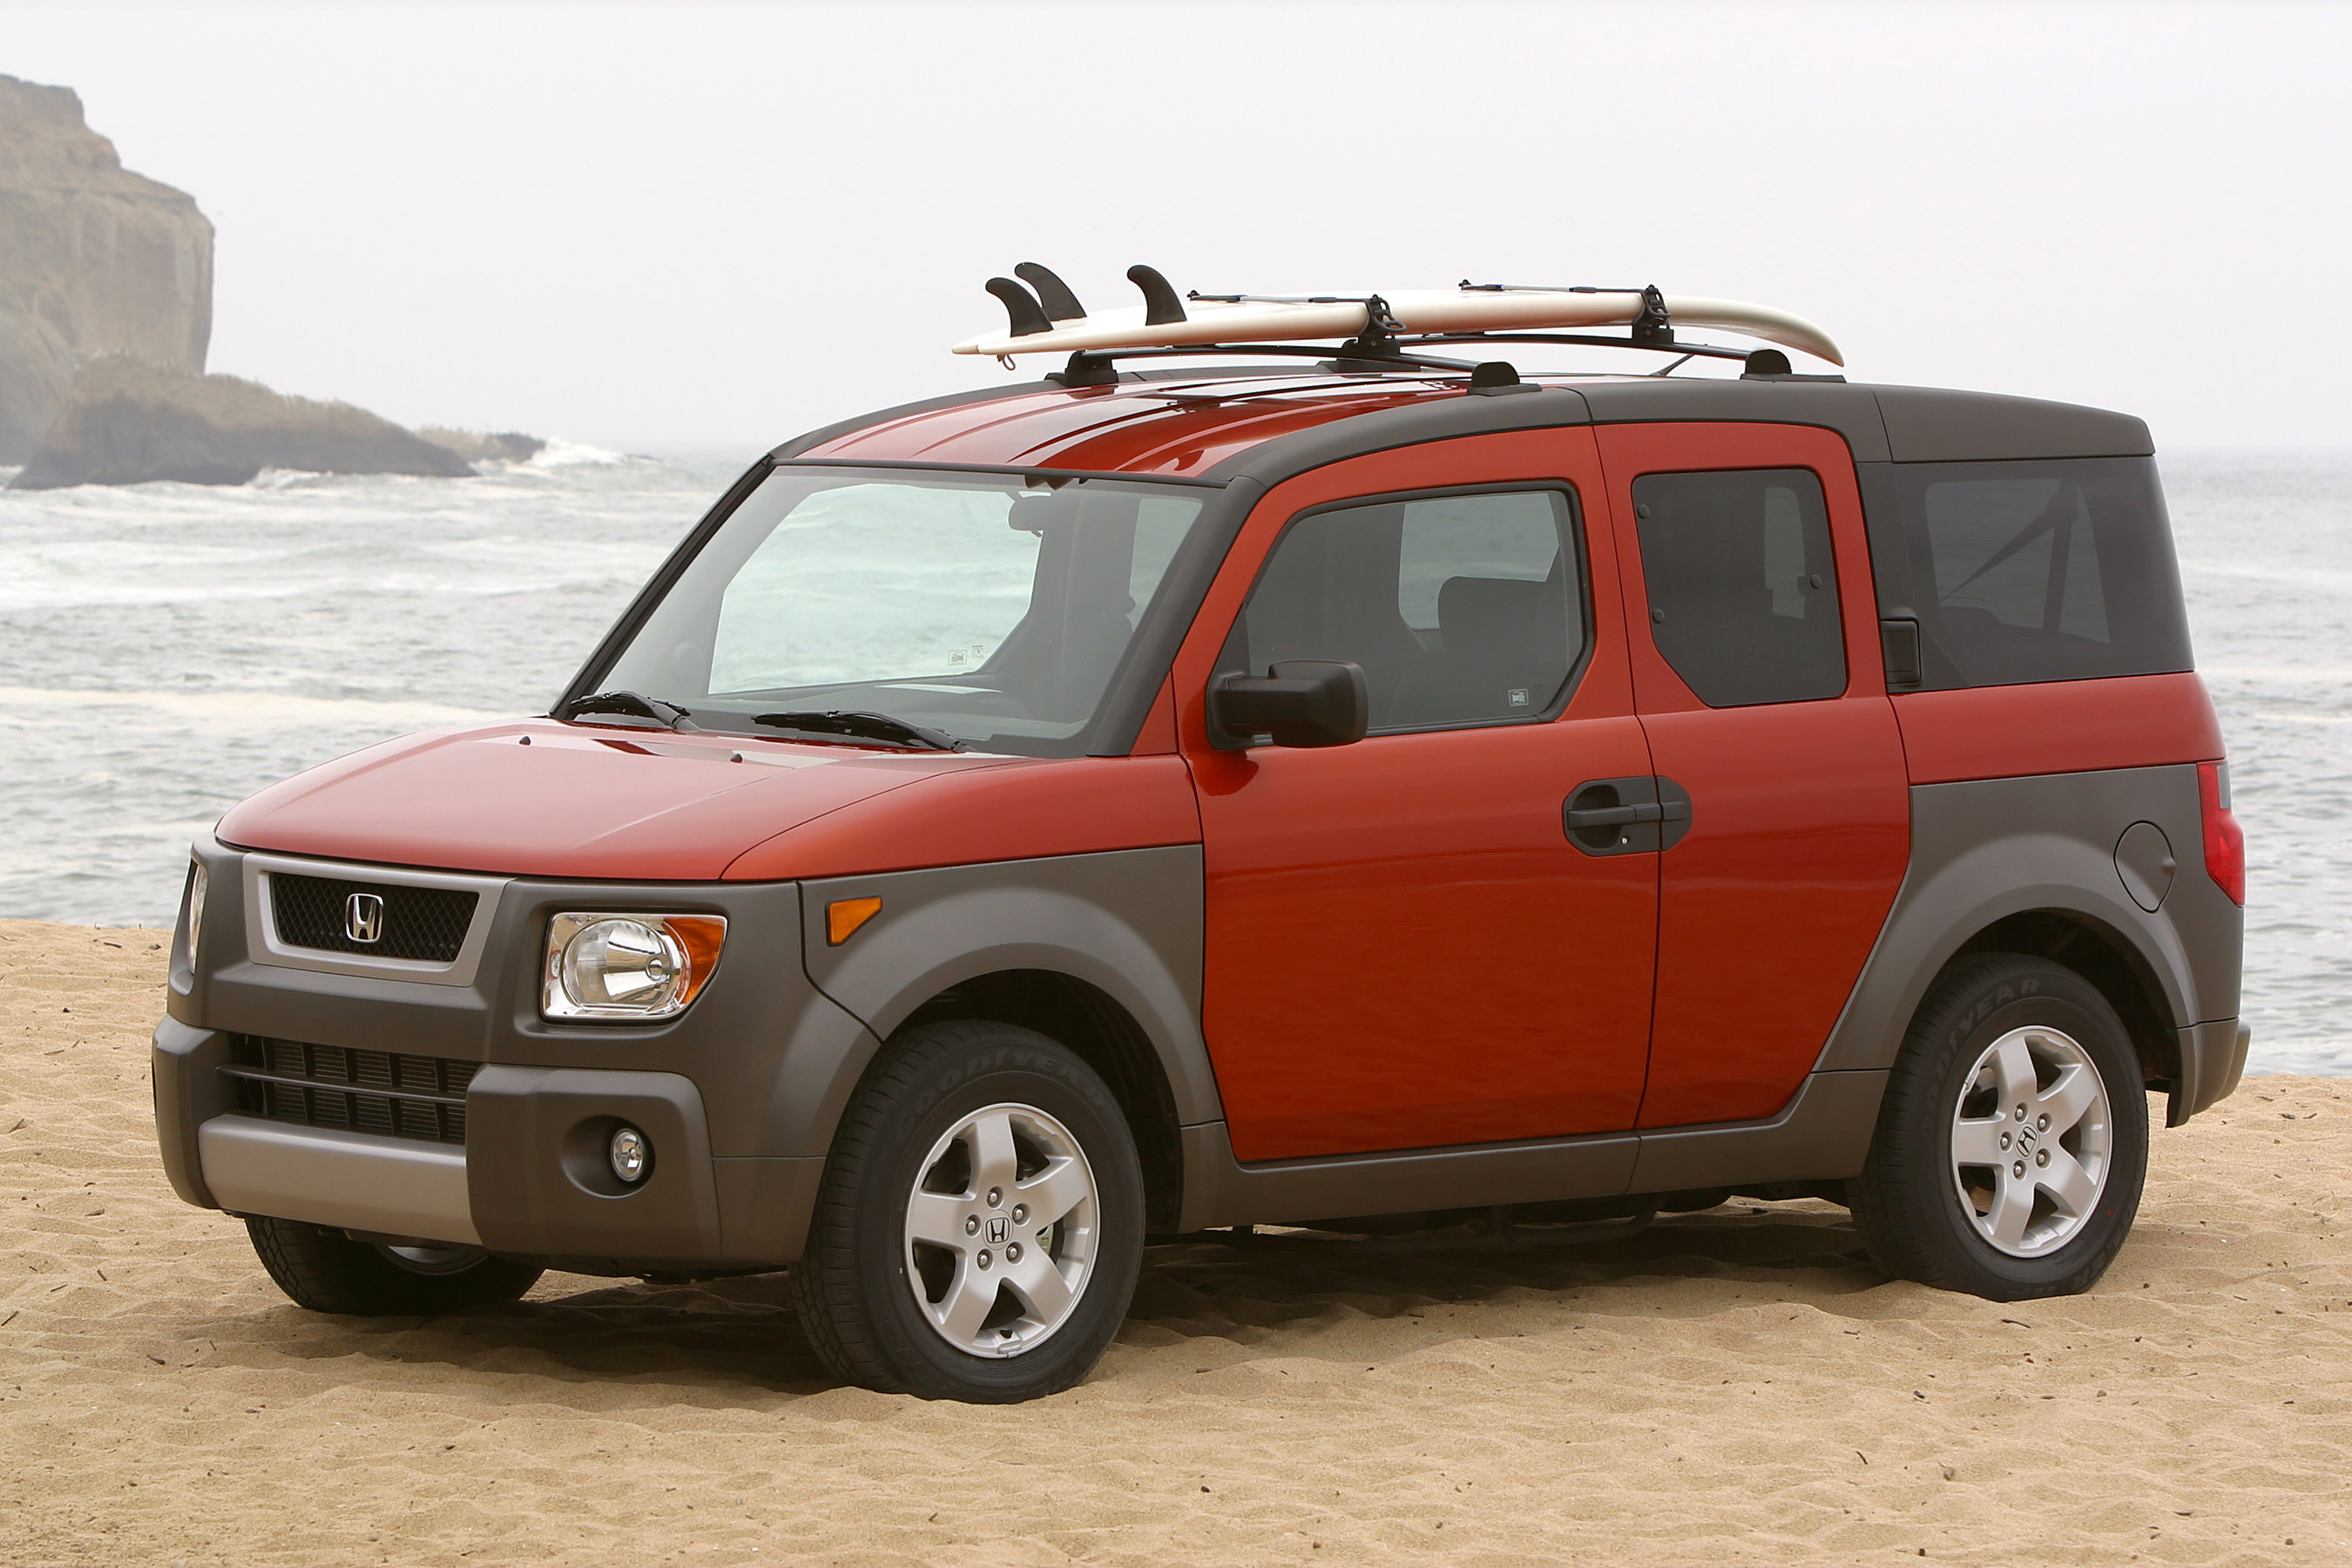 honda element Get 2005 honda element trim level prices and reviews.